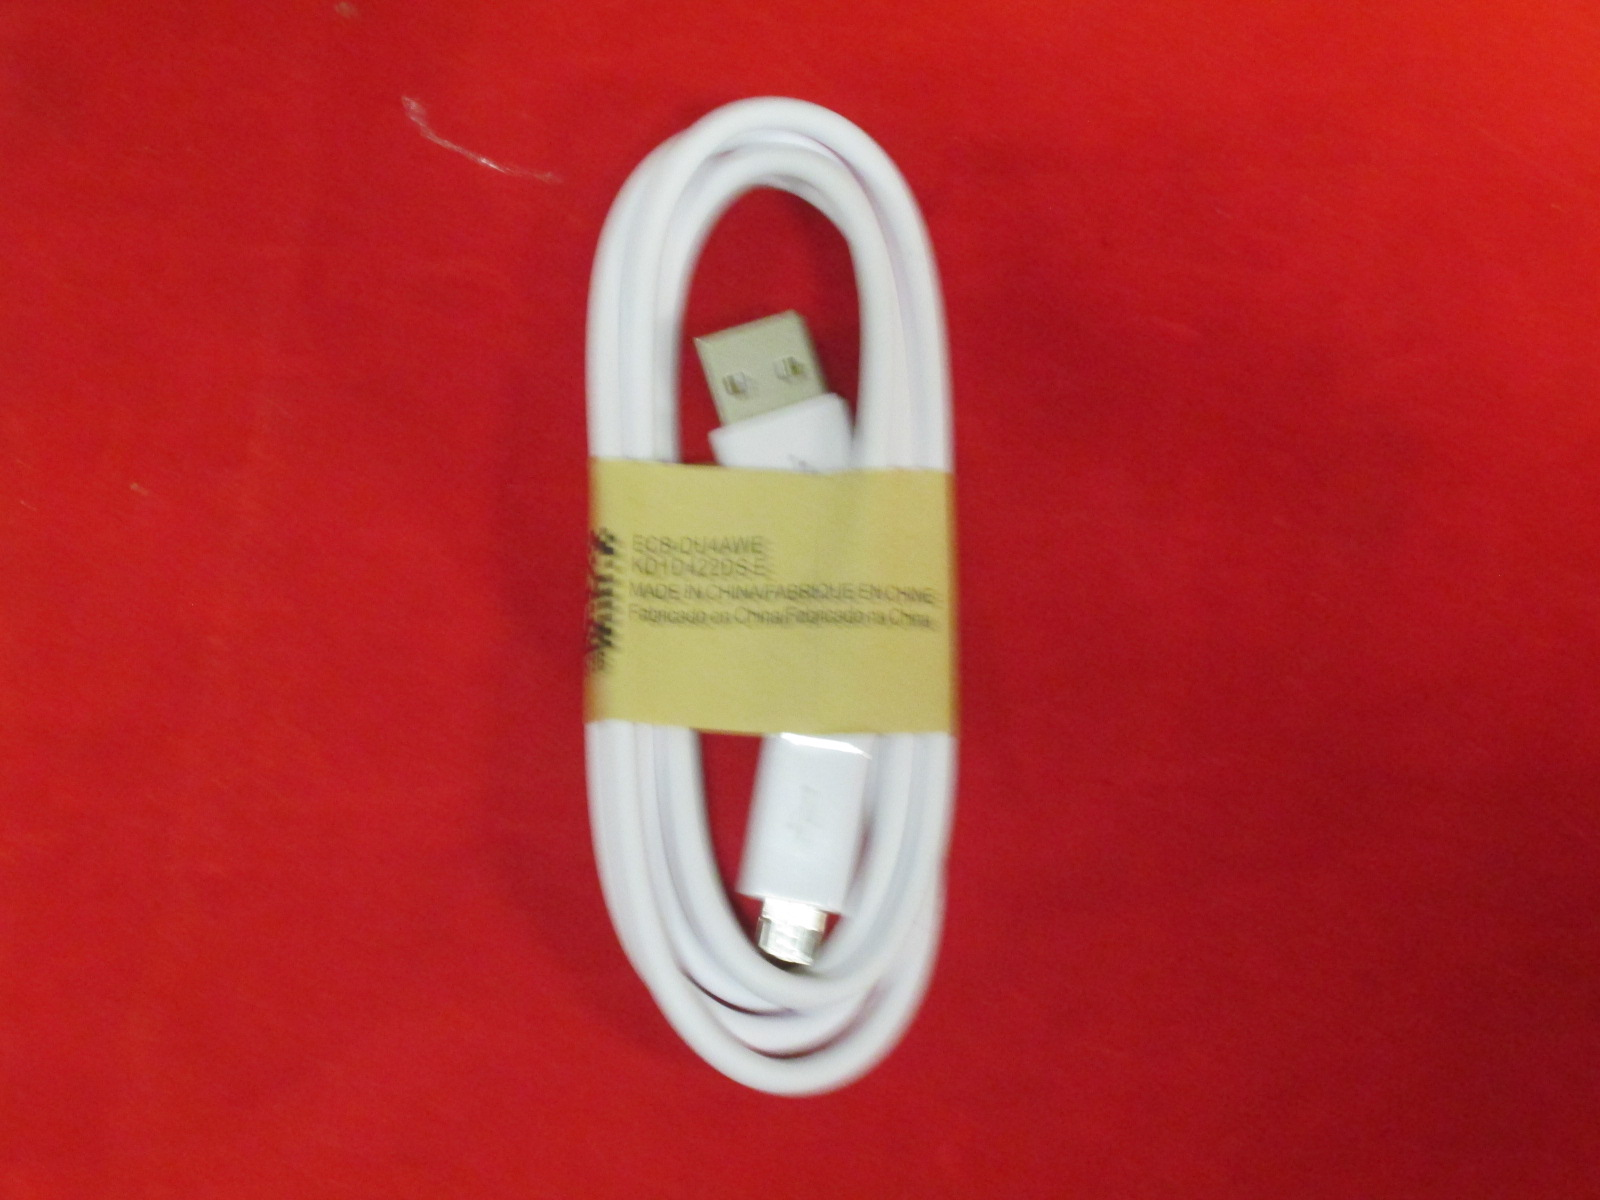 Amazon Kindle Replacement USB Cable White Works With 6 9.7 Display